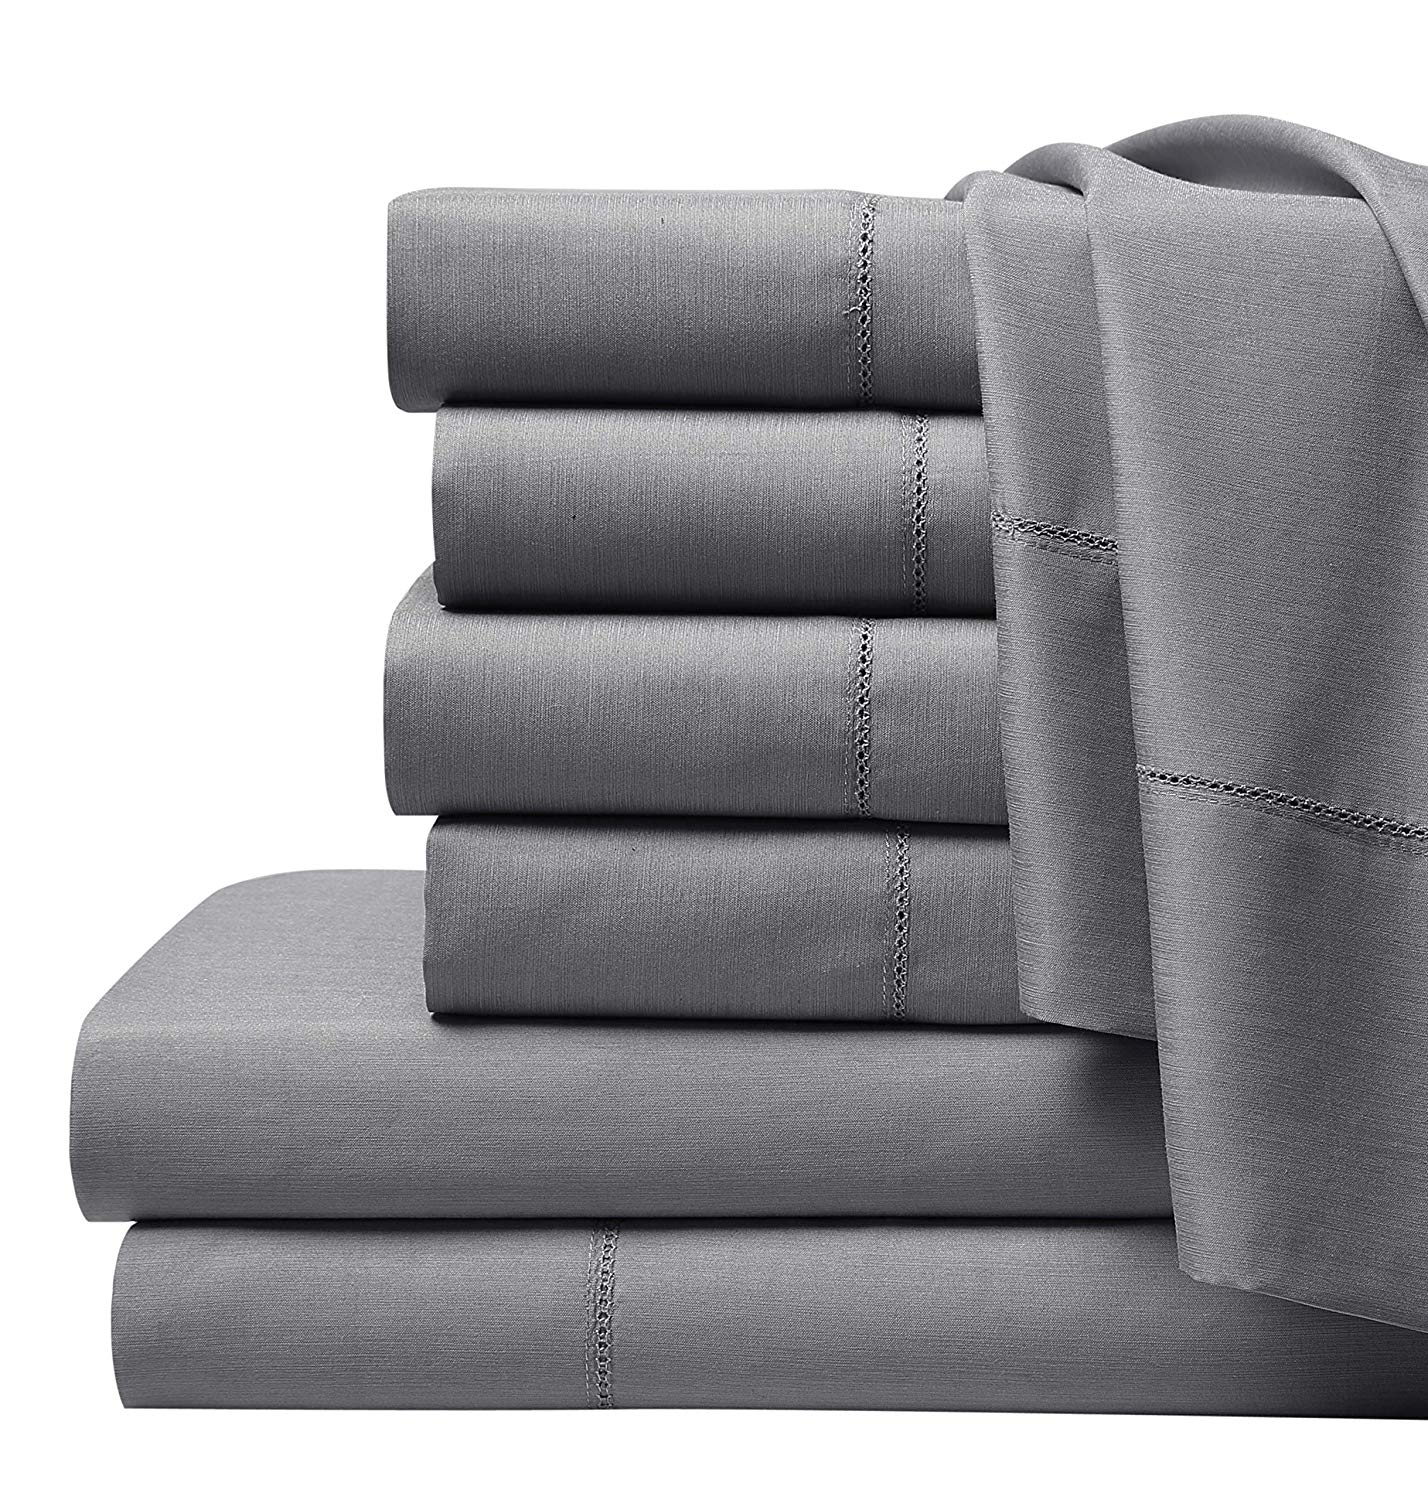 SuperBeddings BAMBUSA 6 Pc Rayon Made from Bamboo Sheet Set